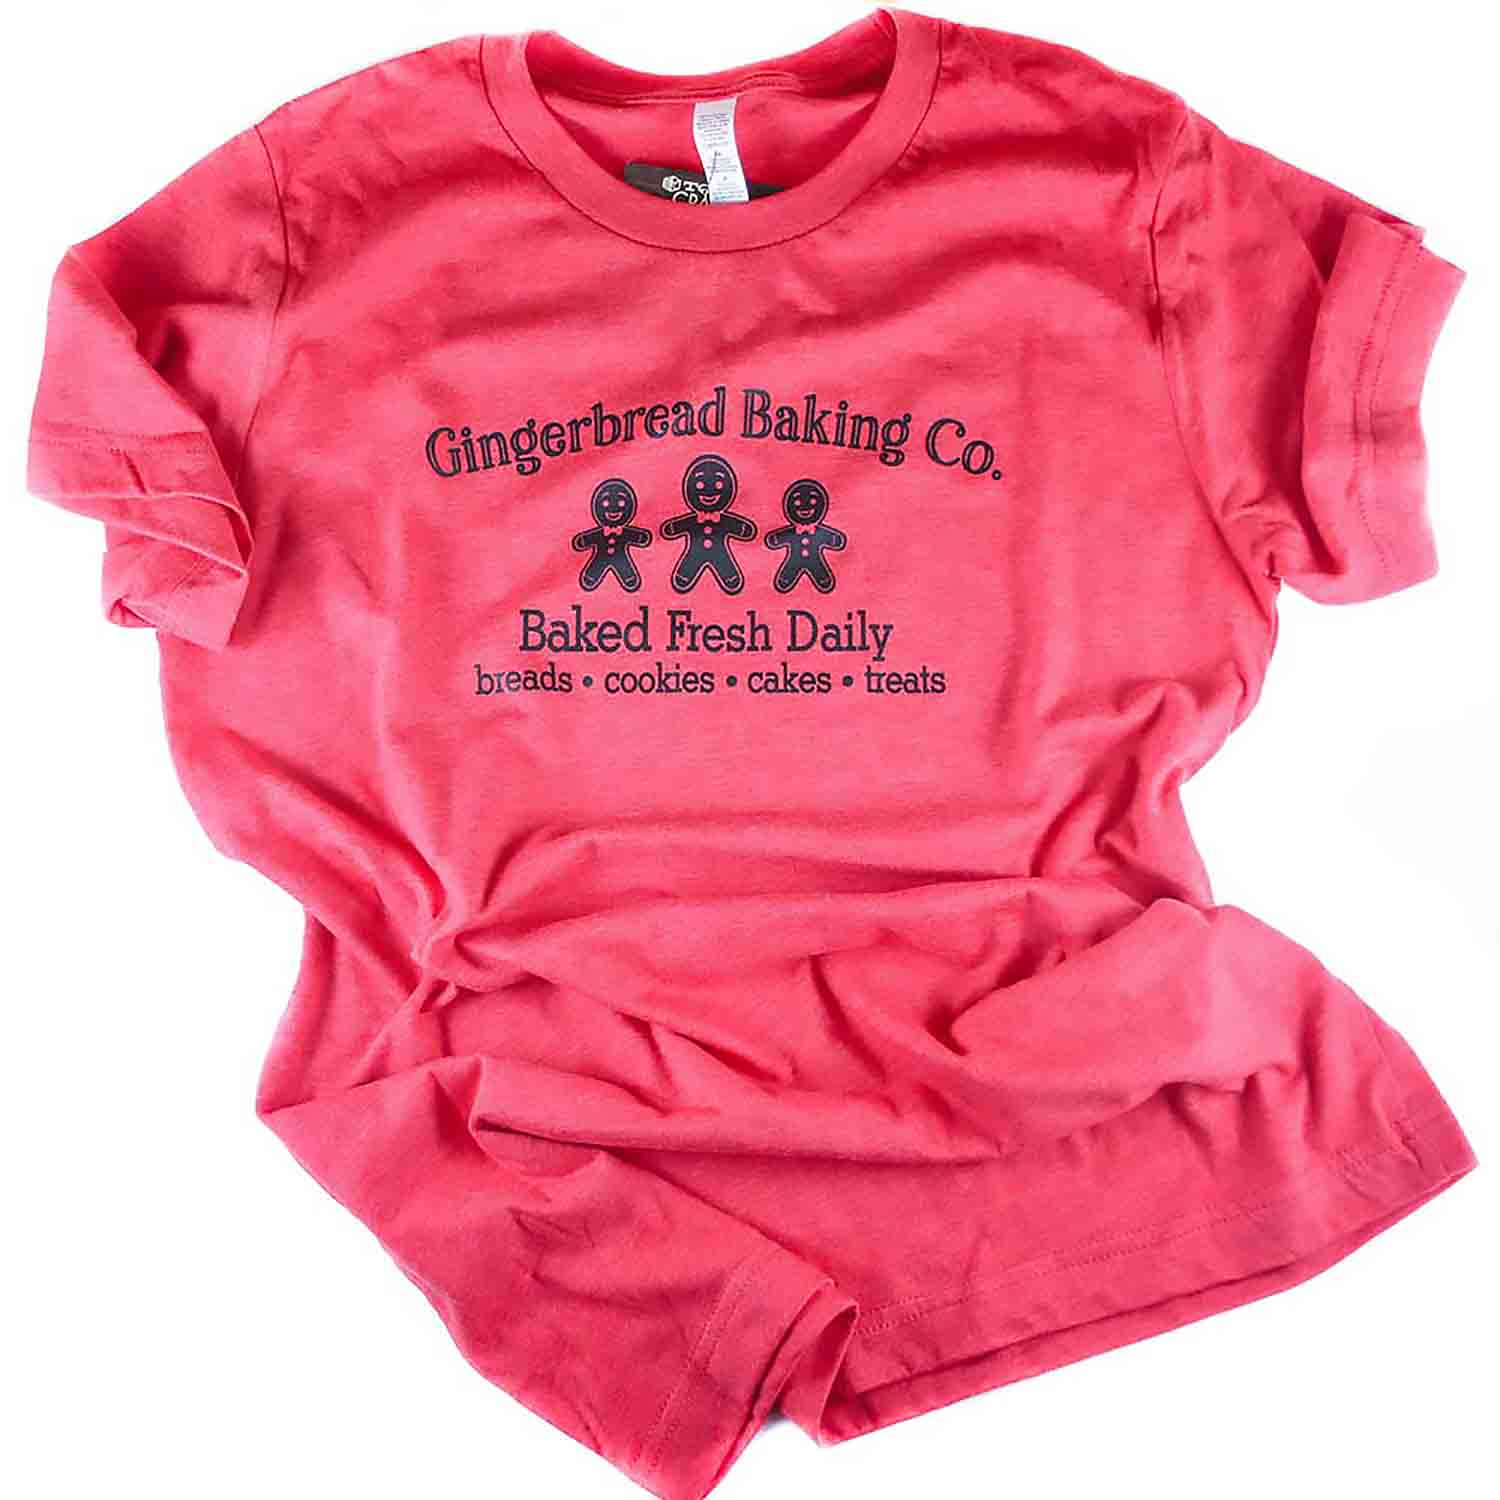 Red Gingerbread Baking Co. T-Shirt - Extra Large